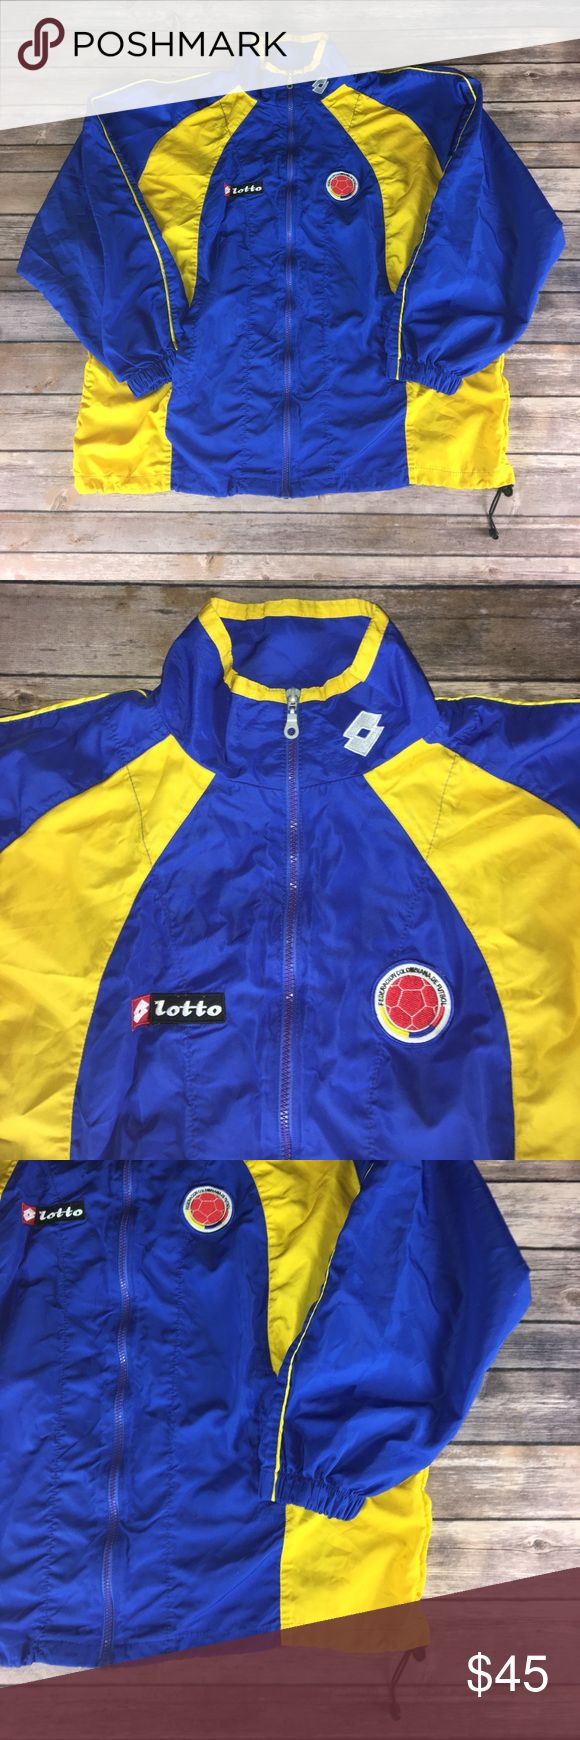 """BLUE & YELLOW LOTTO COLUMBIA FUTBOL WINDBREAKER Like new condition. No stains or flaws. Full zip. Two front pockets. Drawstring on bottom. Tag unreadable. Fits like a L/XL. Chest 27"""" 